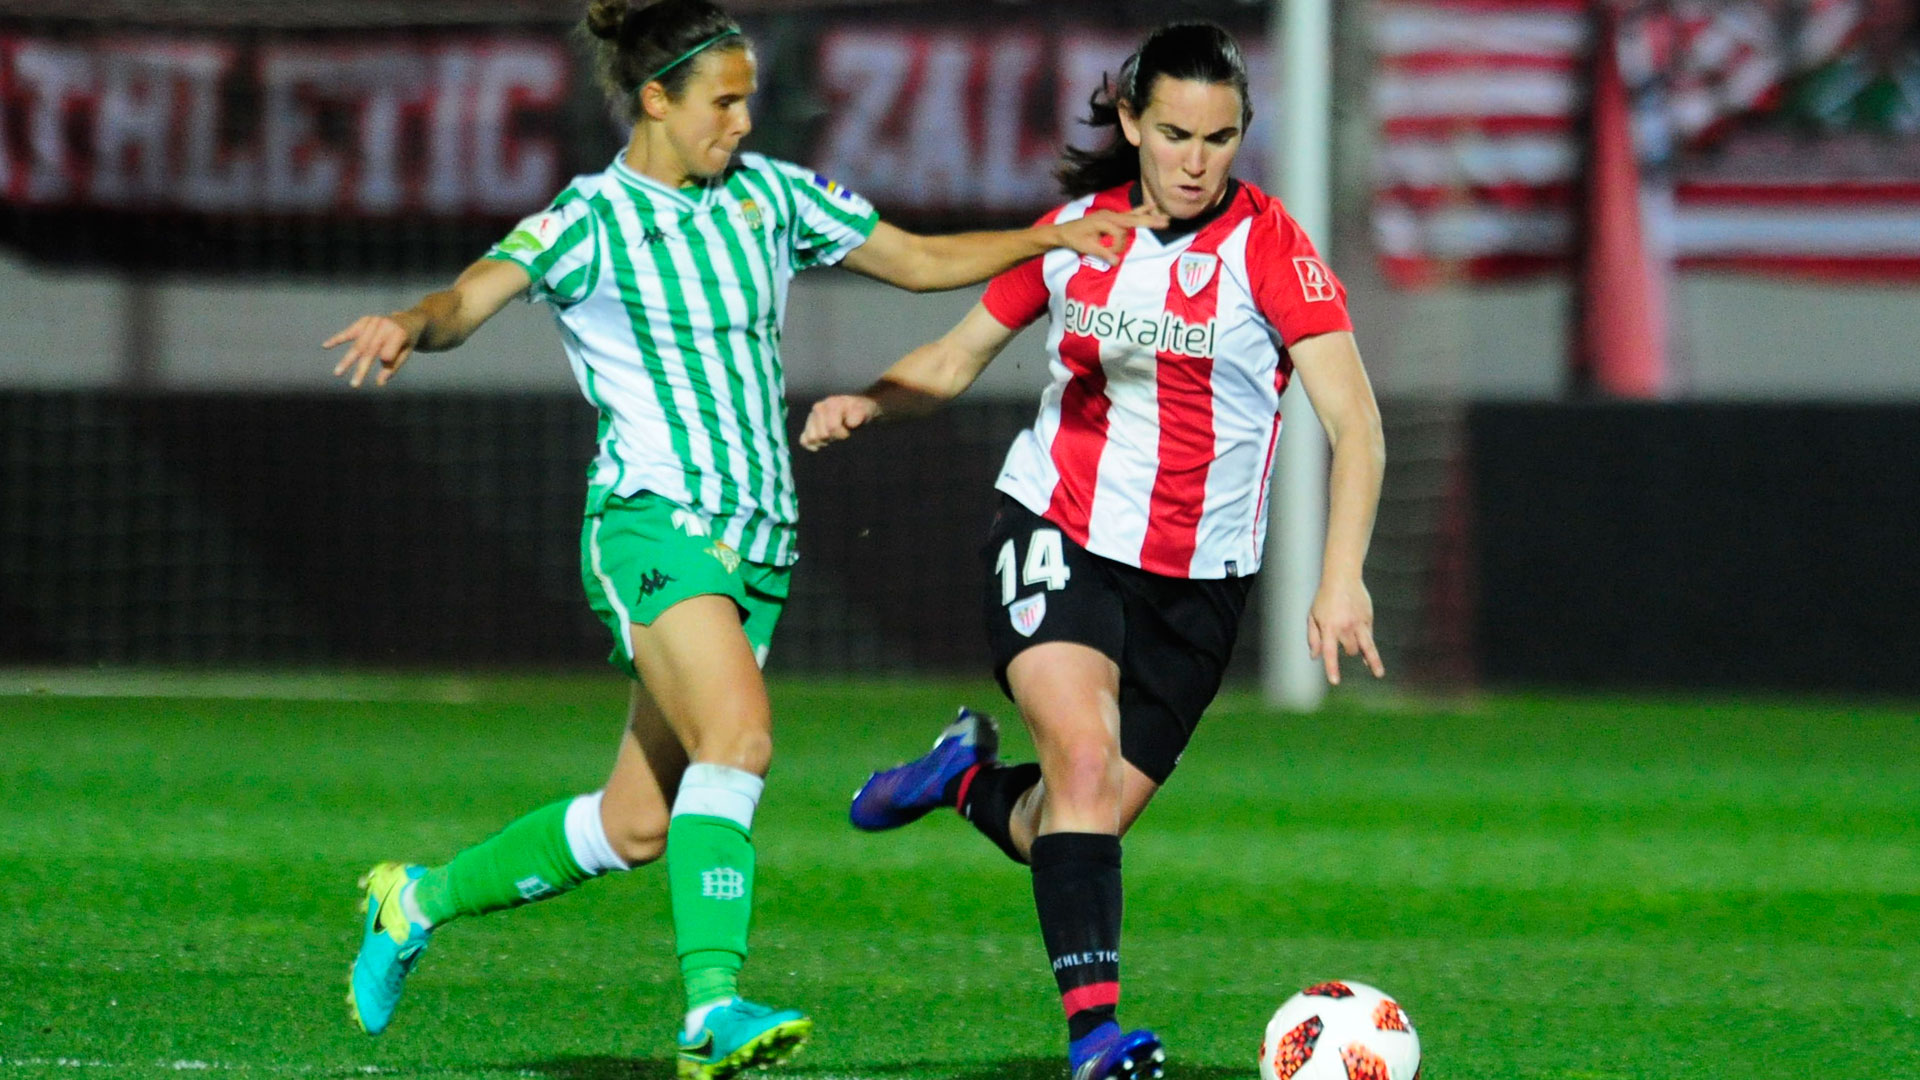 Eunate Arraiza, 200 matches in red and white